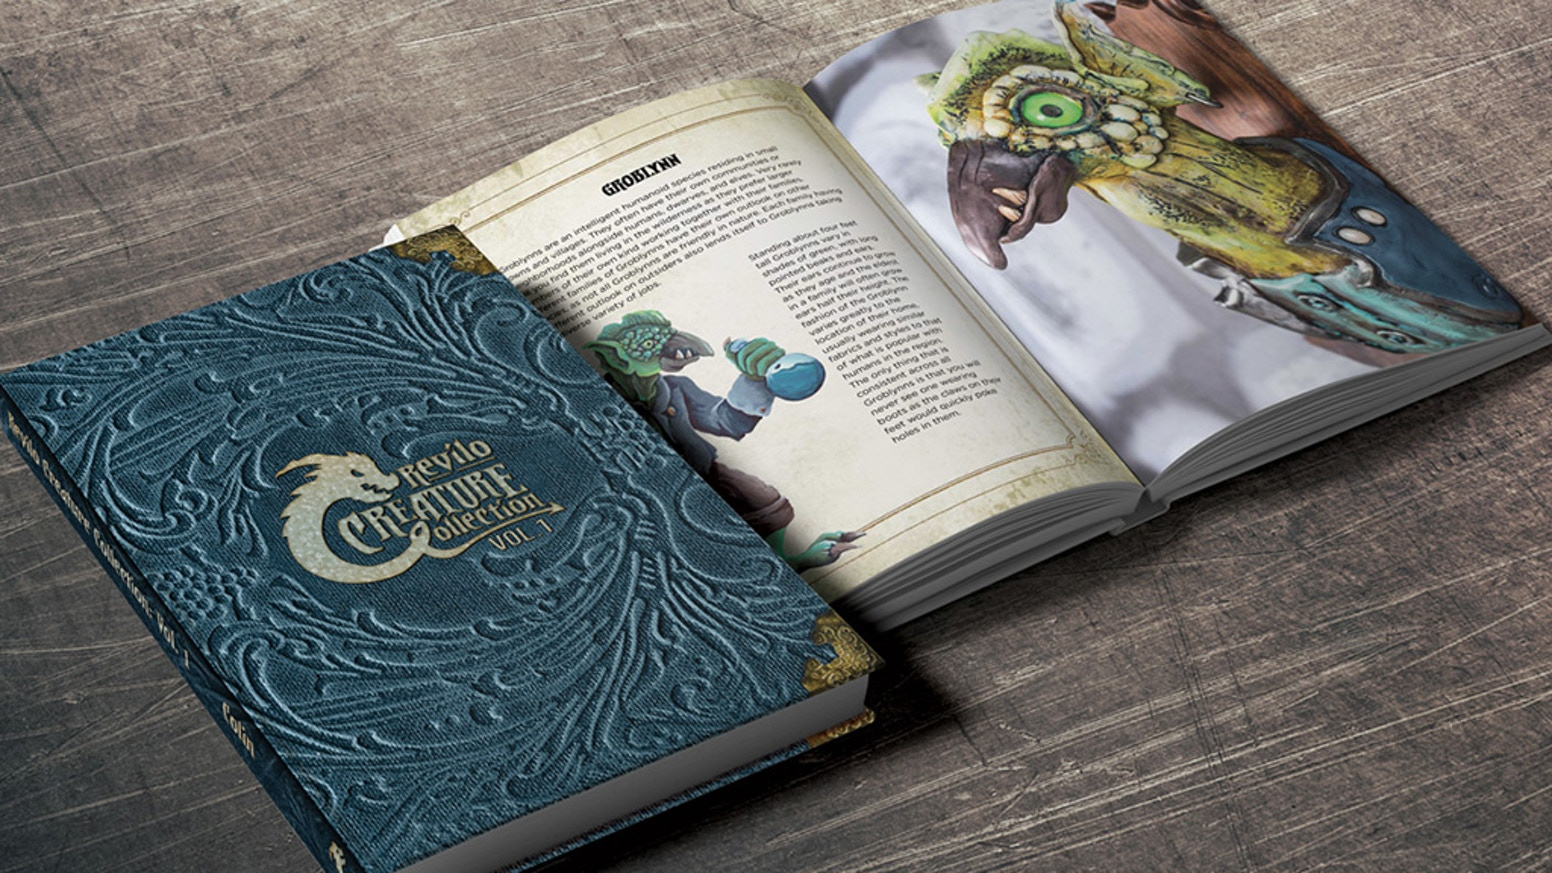 Revilo is a world I created for my son, to teach world building. This book is filled with the species that we have discovered so far.